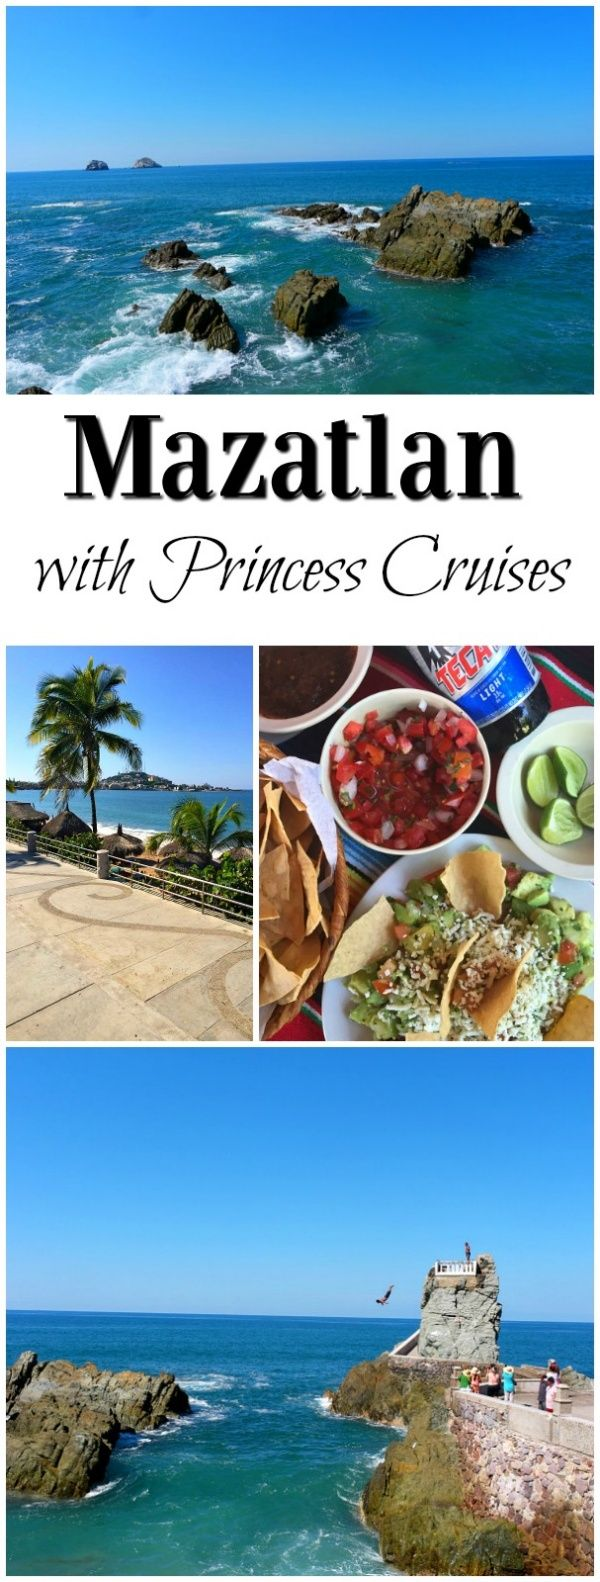 Princess Cruises Excursions in Mazatlán, Mexico~ while traveling aboard the ship The Ruby Princess #ComeBackNew